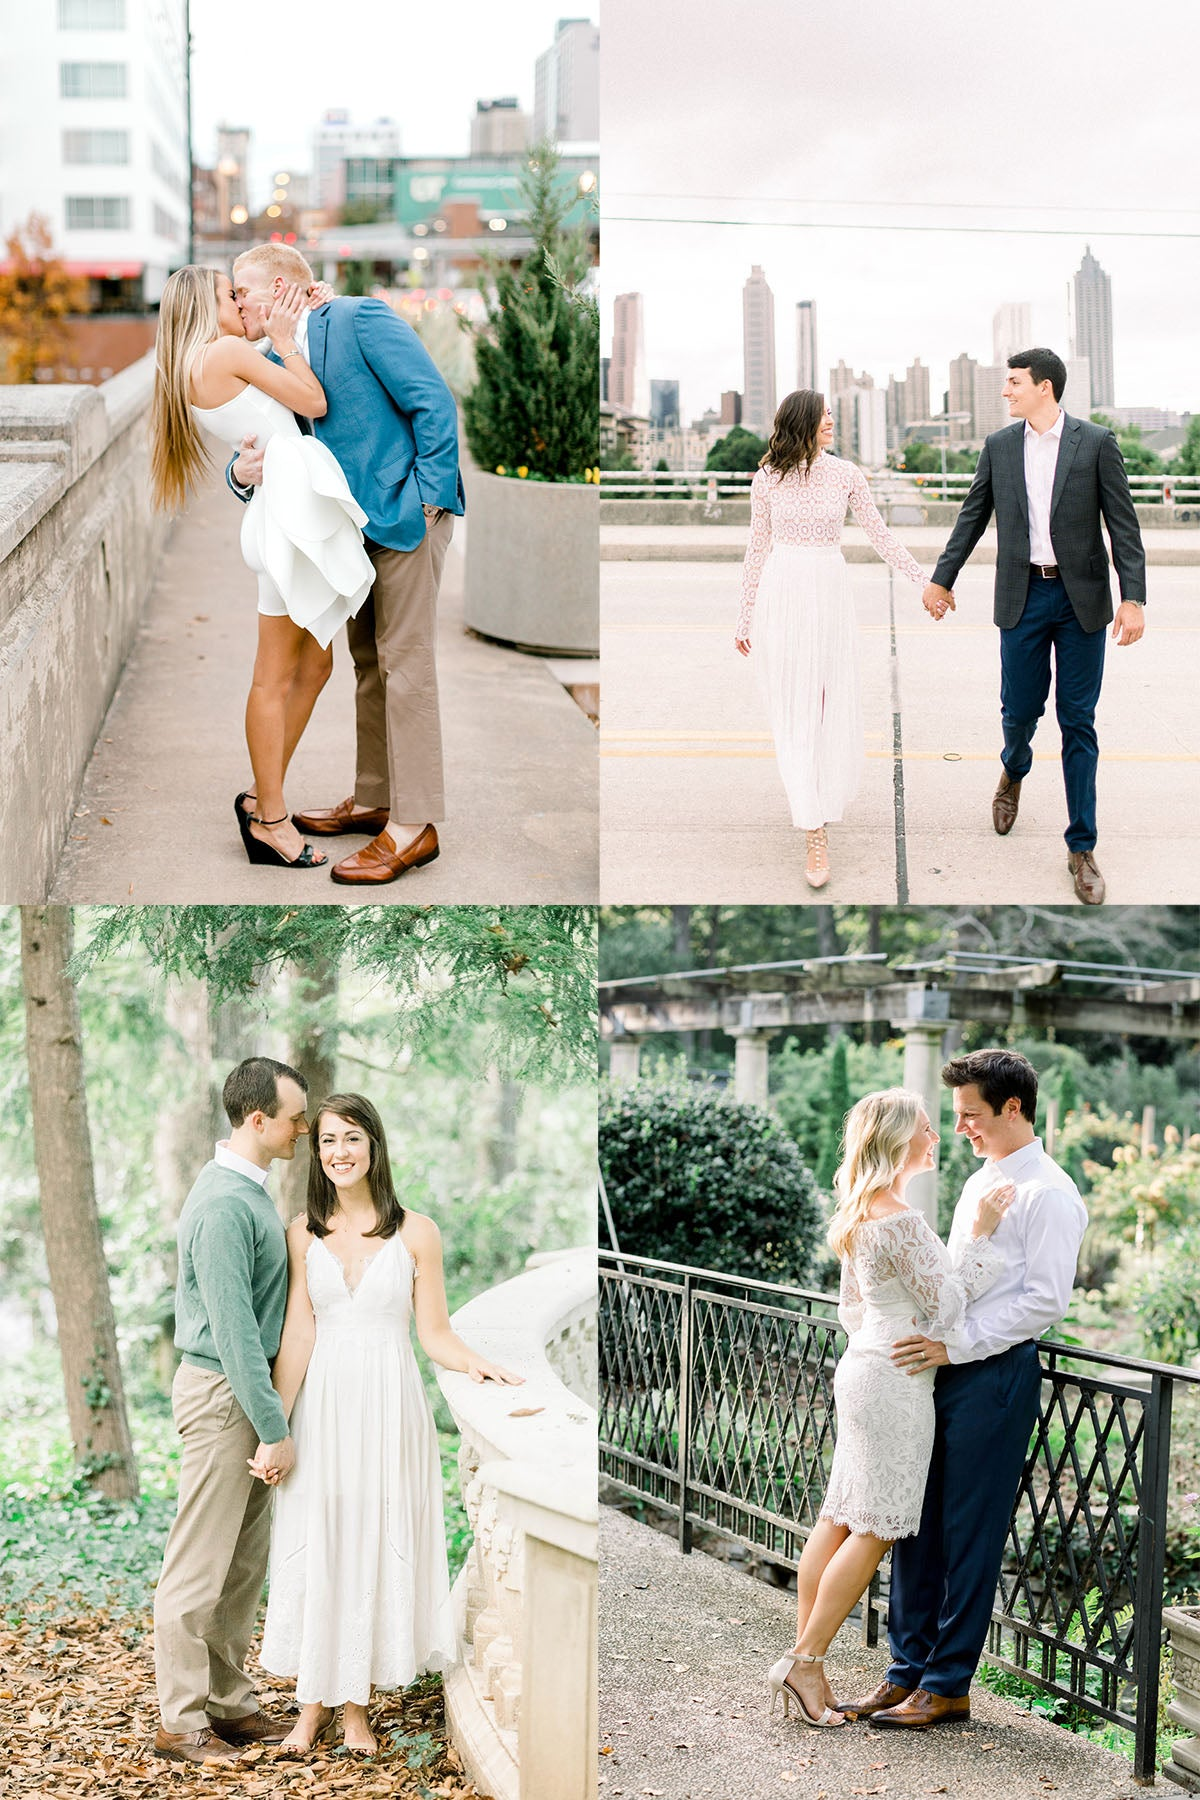 What he should wear for engagement photos | Engagement dresses | Eternal Ivory